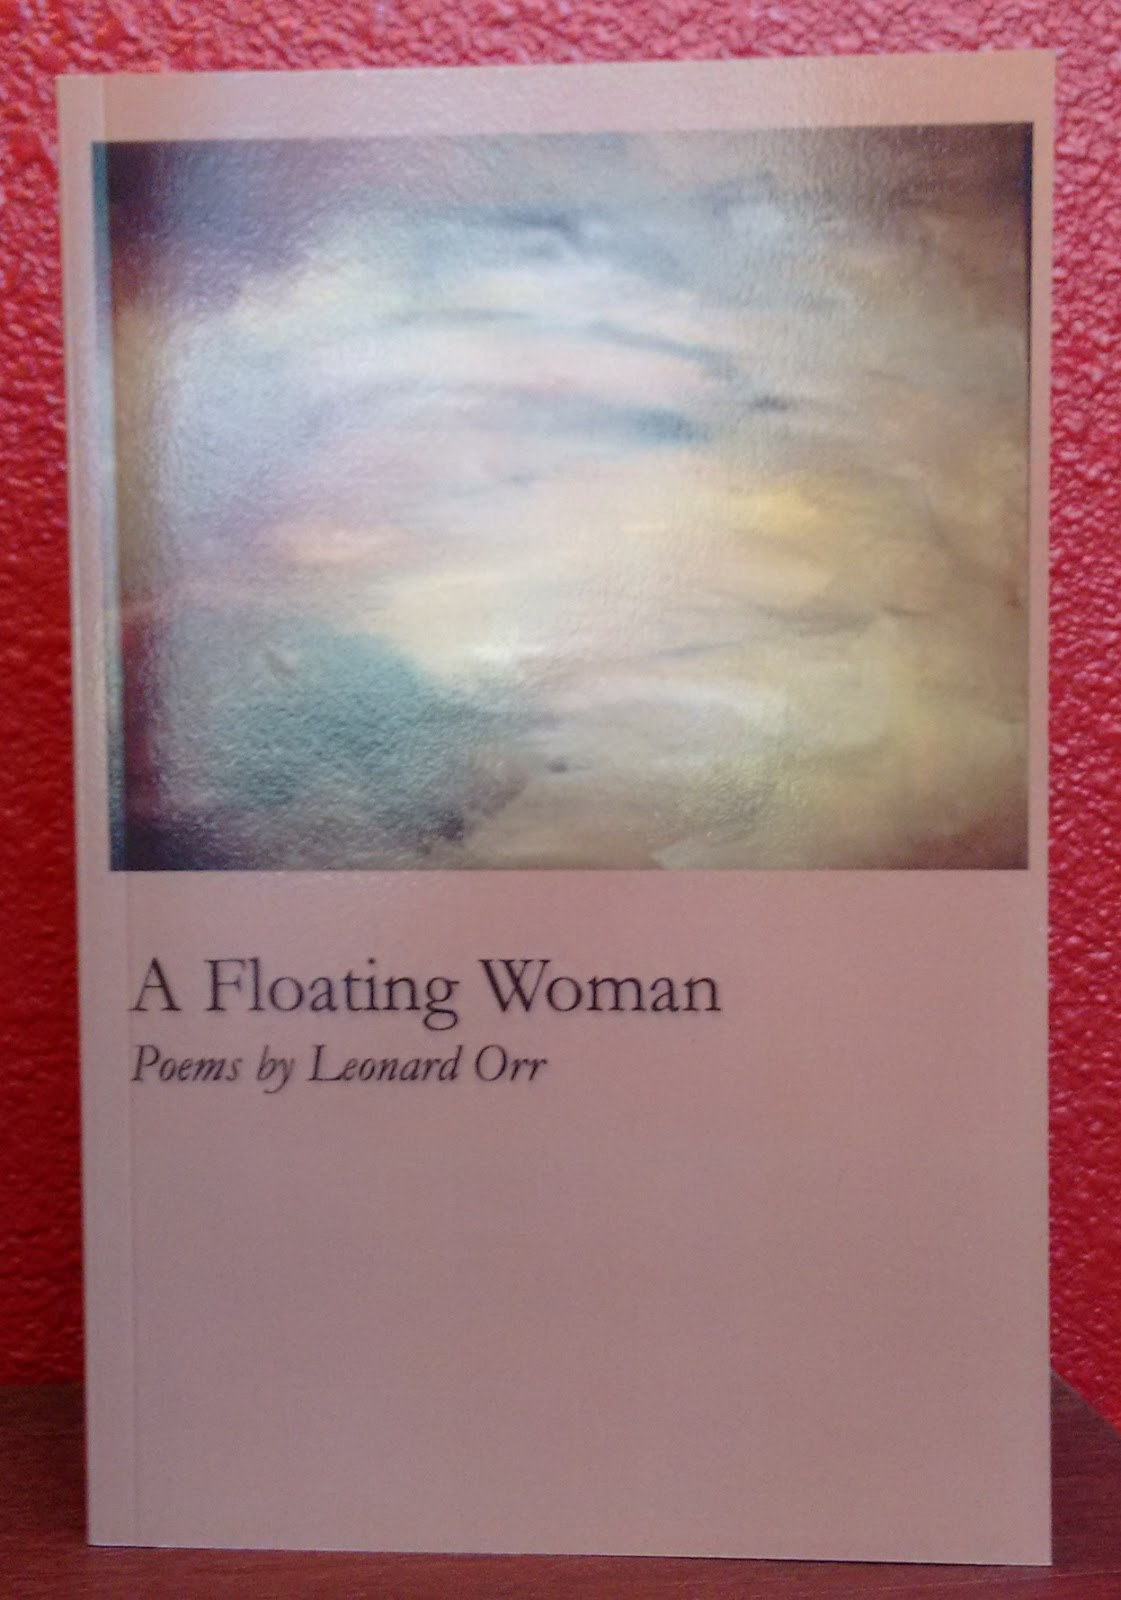 Reviews with TLC: A Floating Woman Poems by Leonard Orr